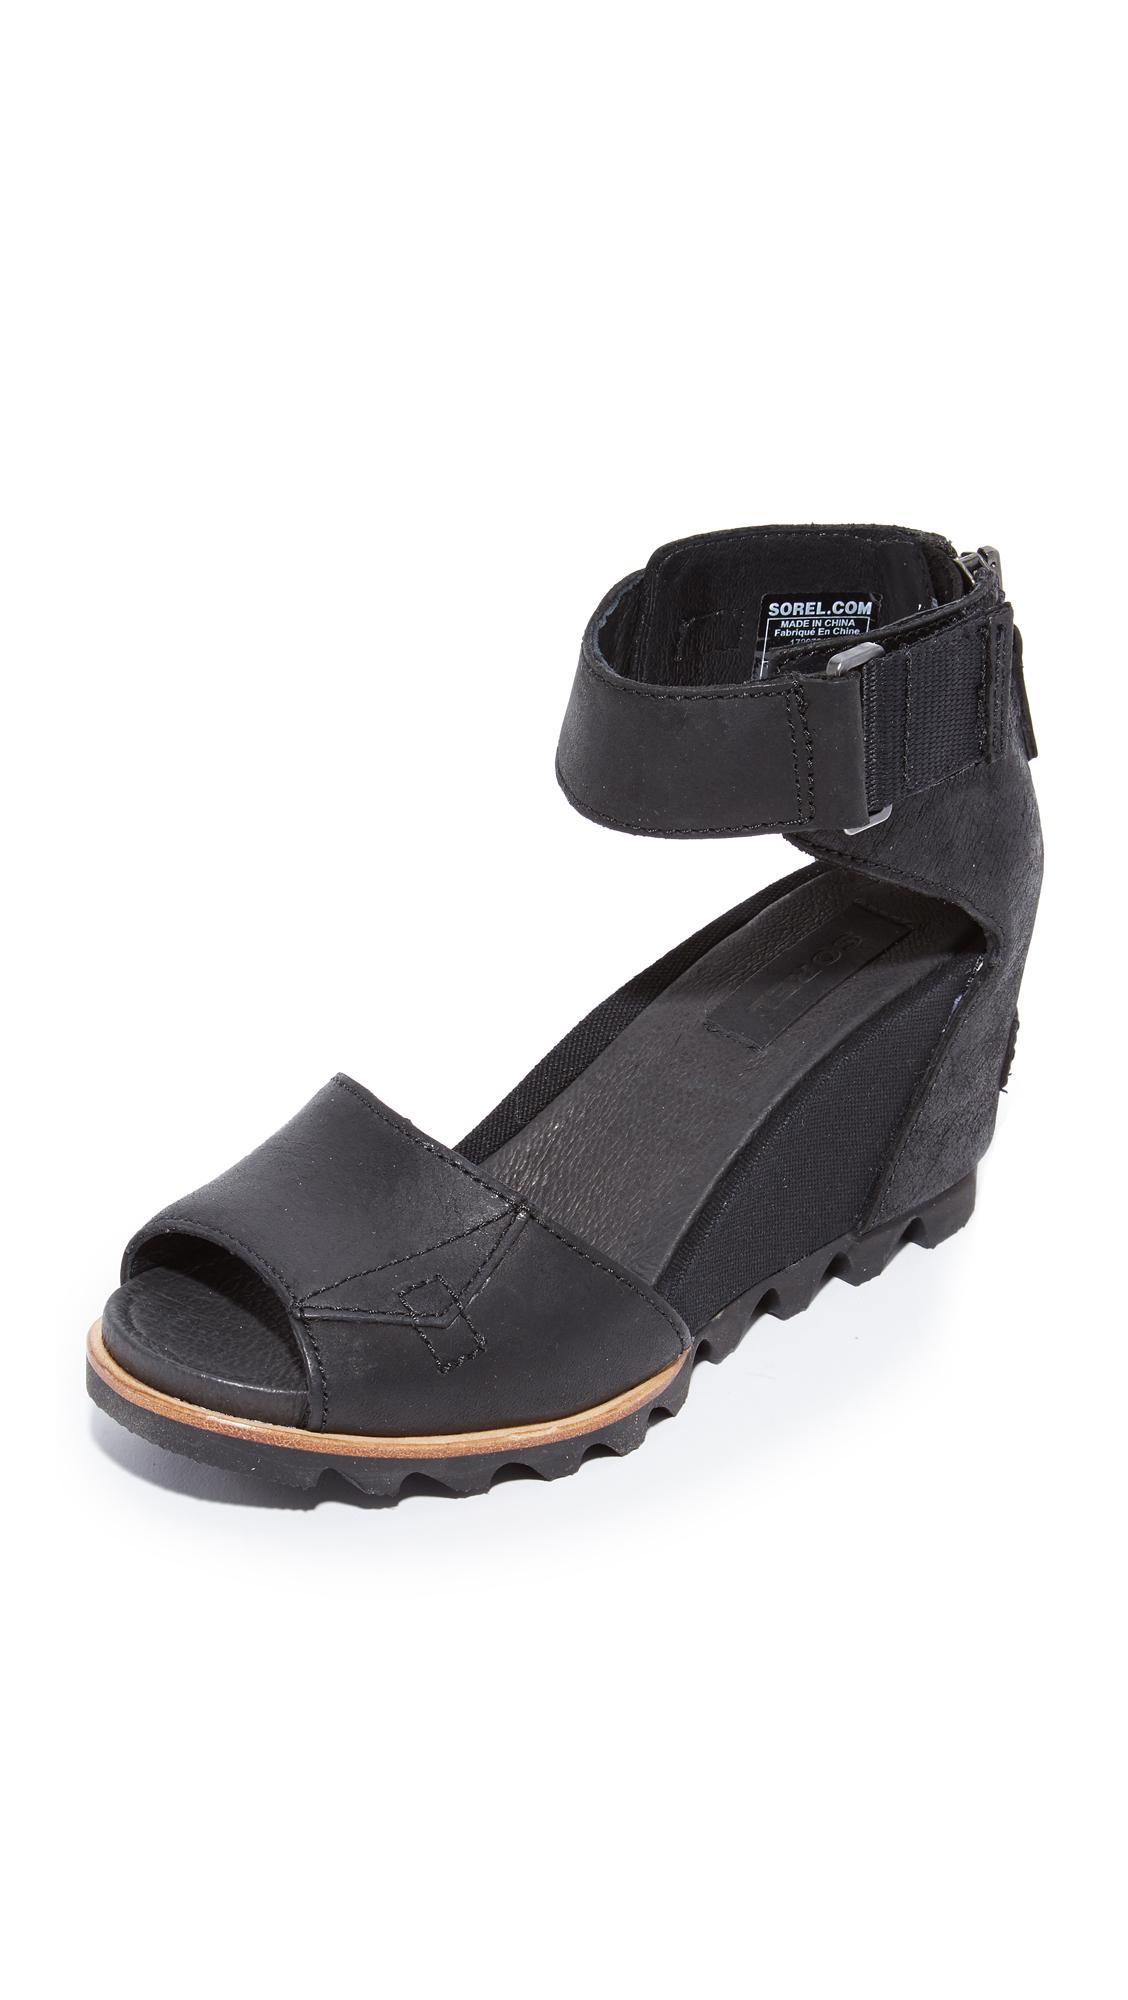 Sorel Joanie Wedge Sandals In Black Lyst